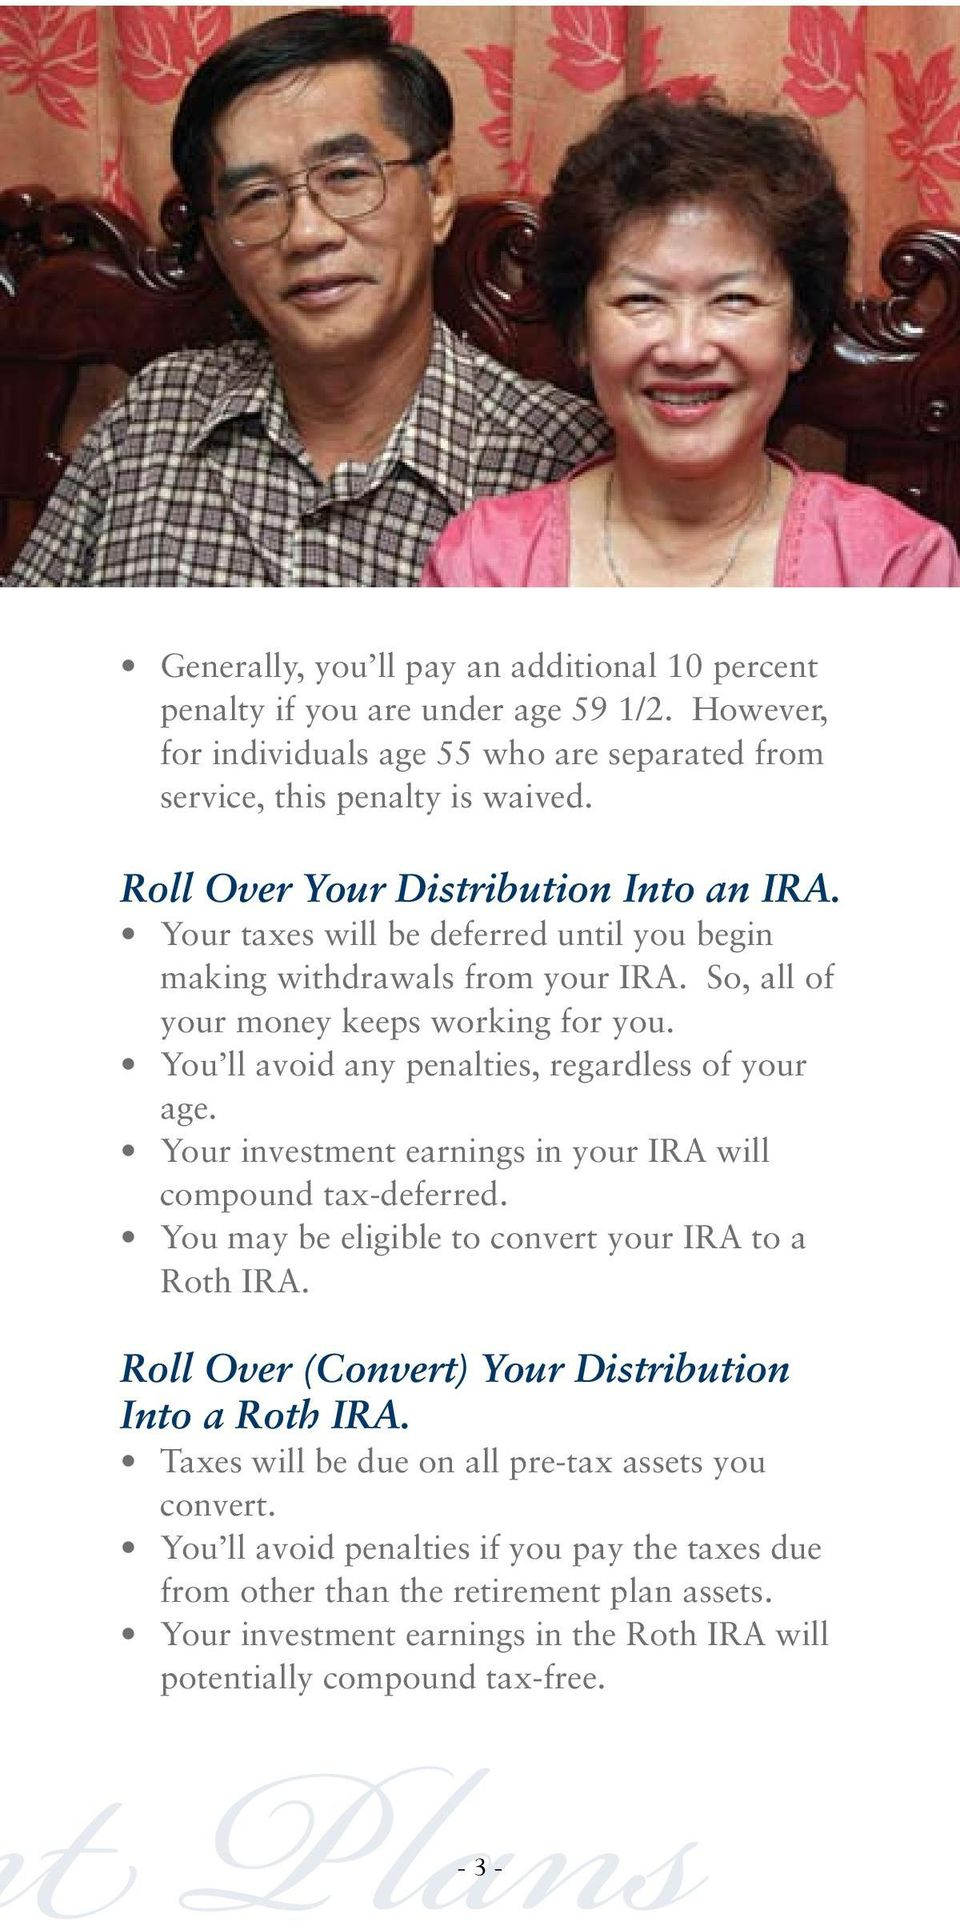 You ll avoid any penalties, regardless of your age. Your investment earnings in your IRA will compound tax-deferred. You may be eligible to convert your IRA to a Roth IRA.